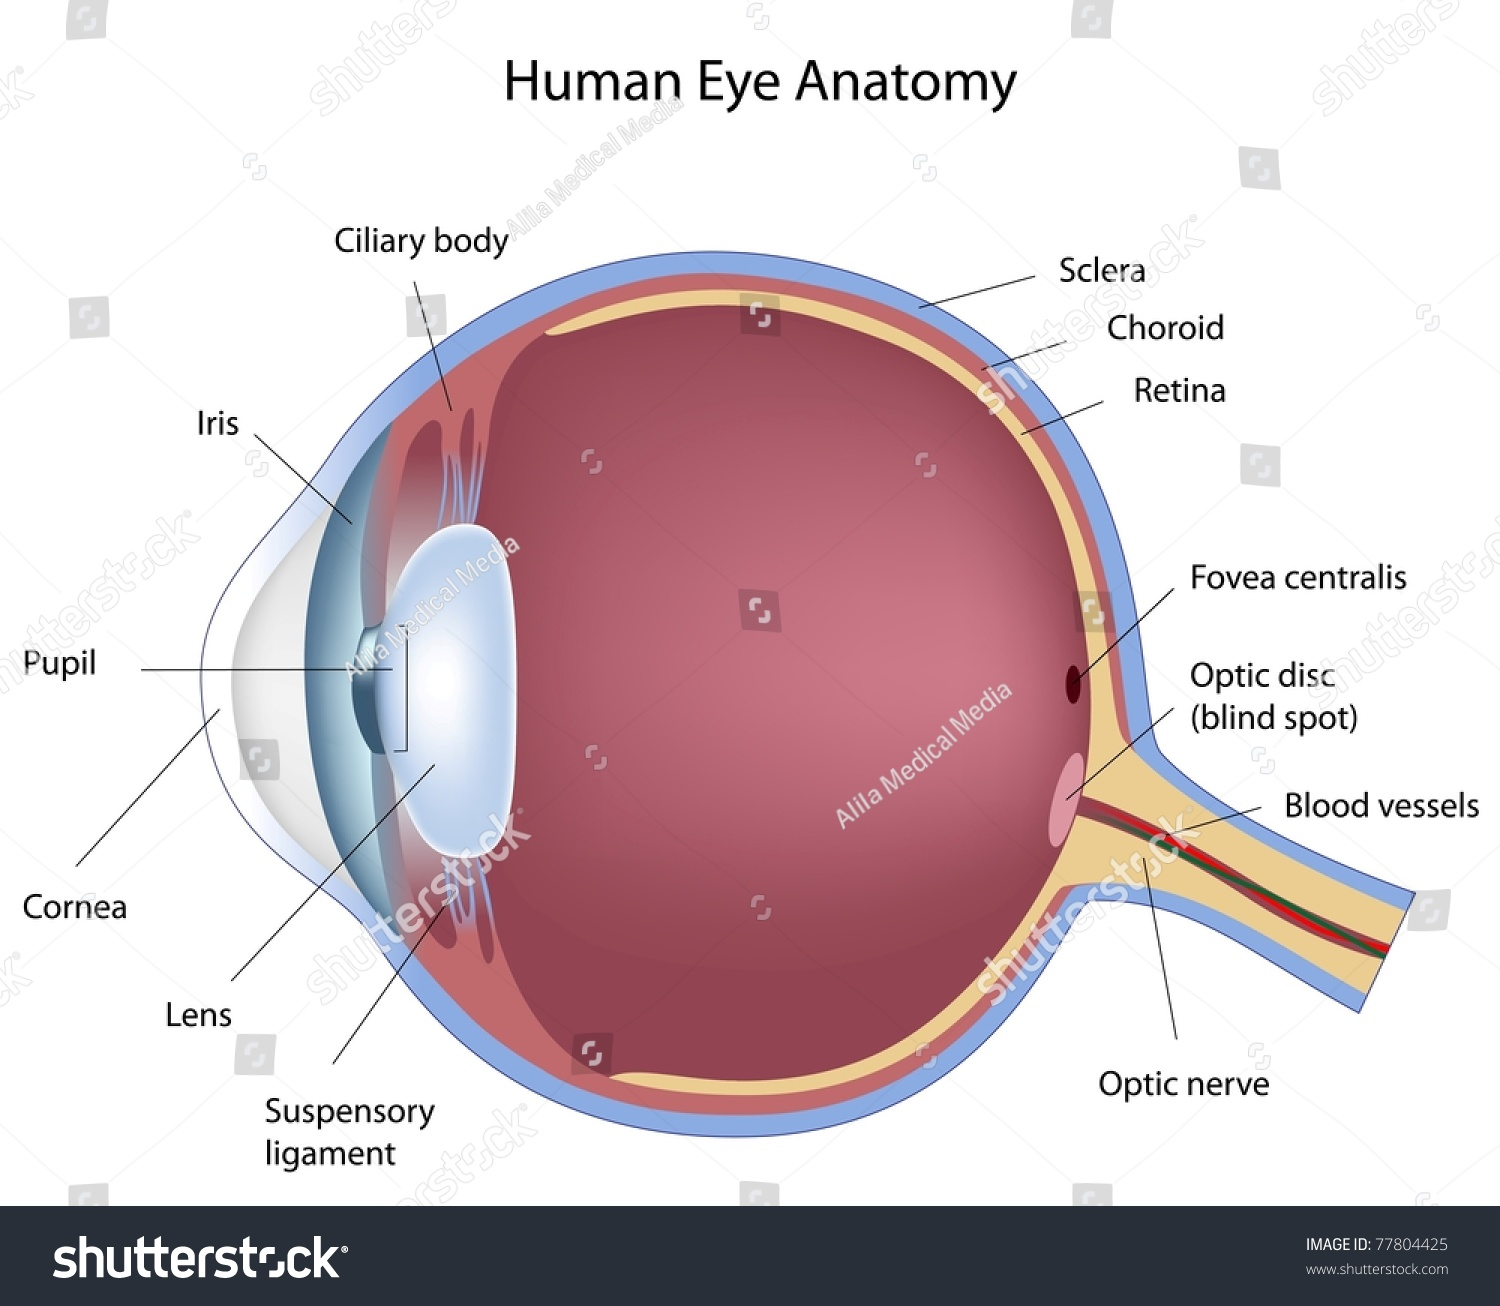 hight resolution of anatomy human eye stock illustration 77804425 shutterstock rh shutterstock com human eye diagram without labels structure of human eye diagram